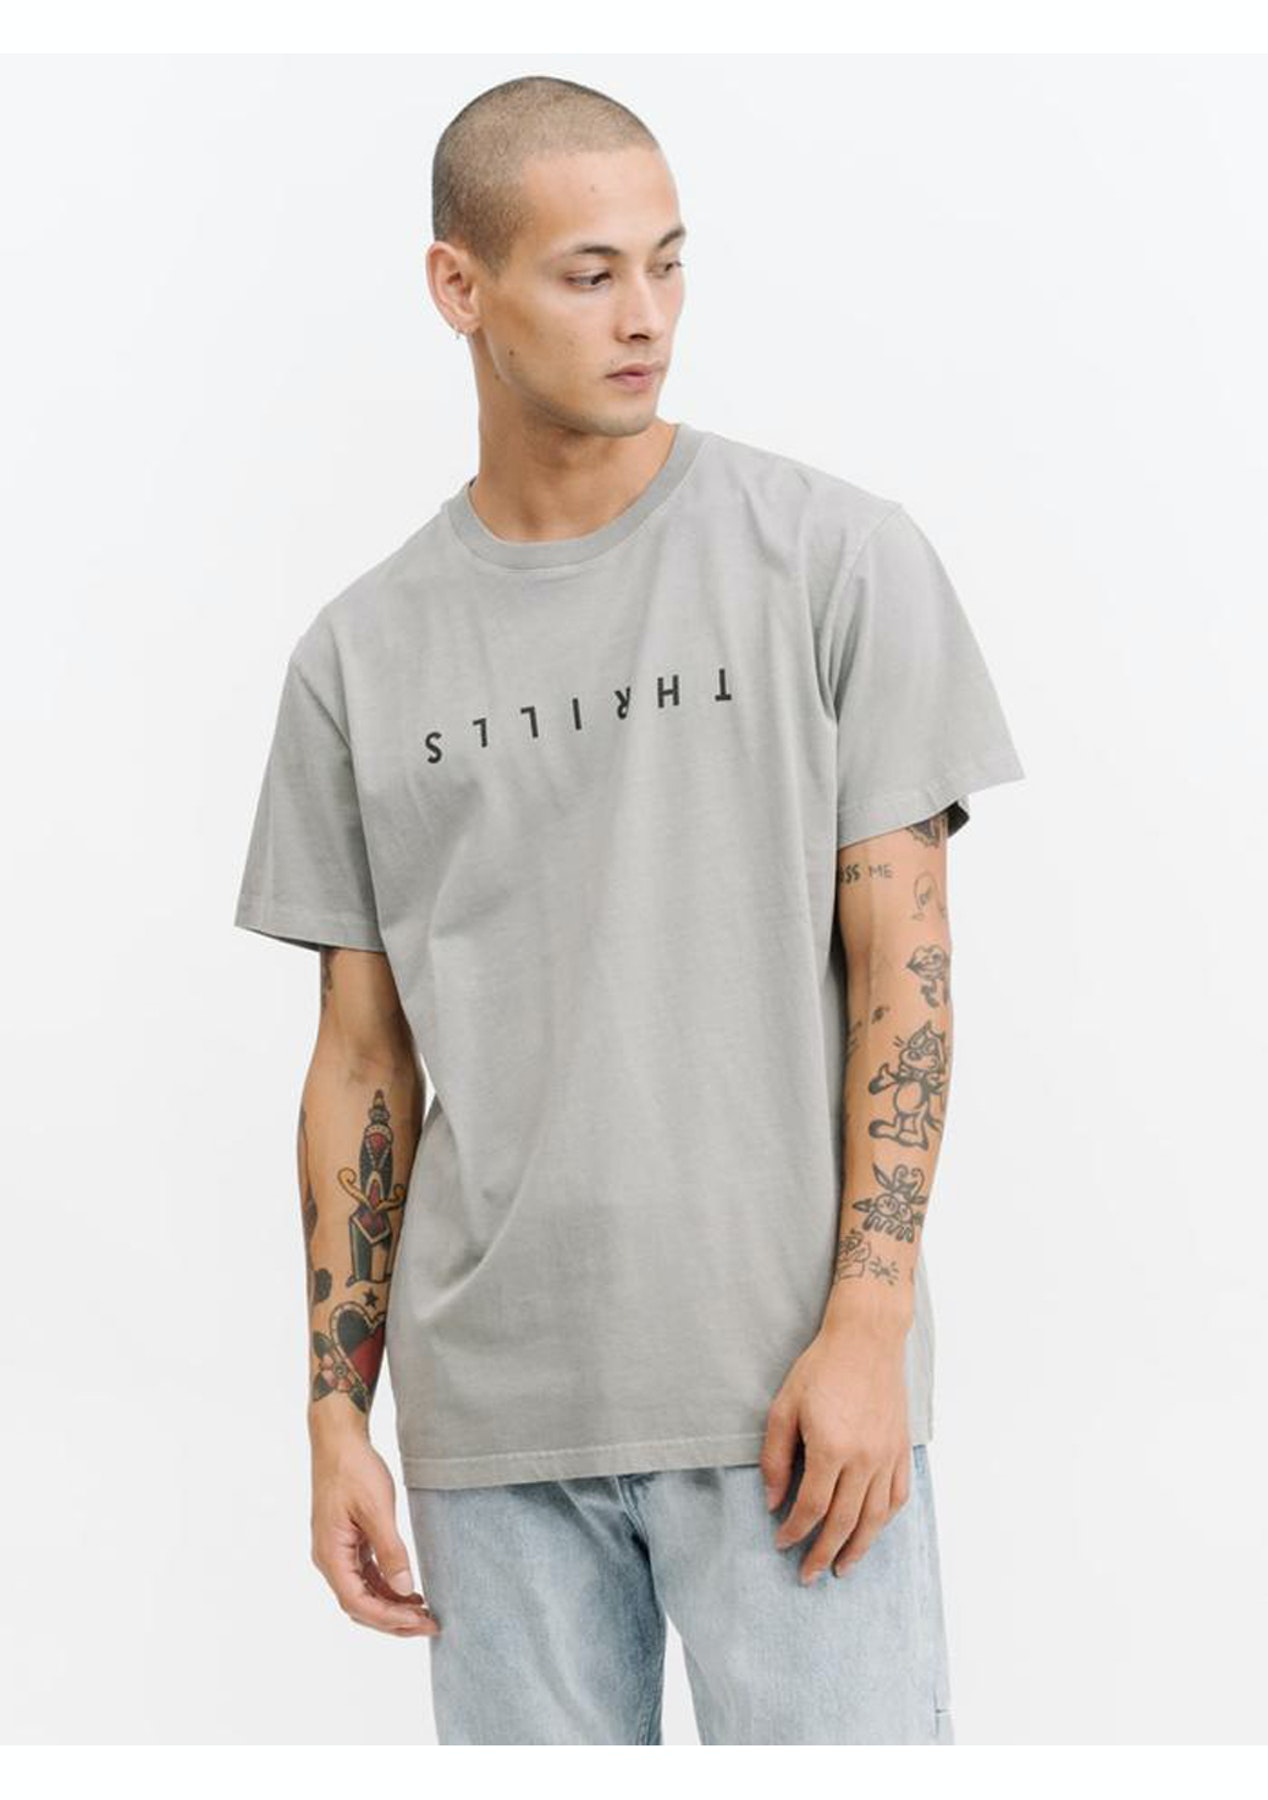 cad25e9e367e Thrills Co - Thrills Classic Tee - Stone - DONT TRANSER Thrills Co. - Onceit